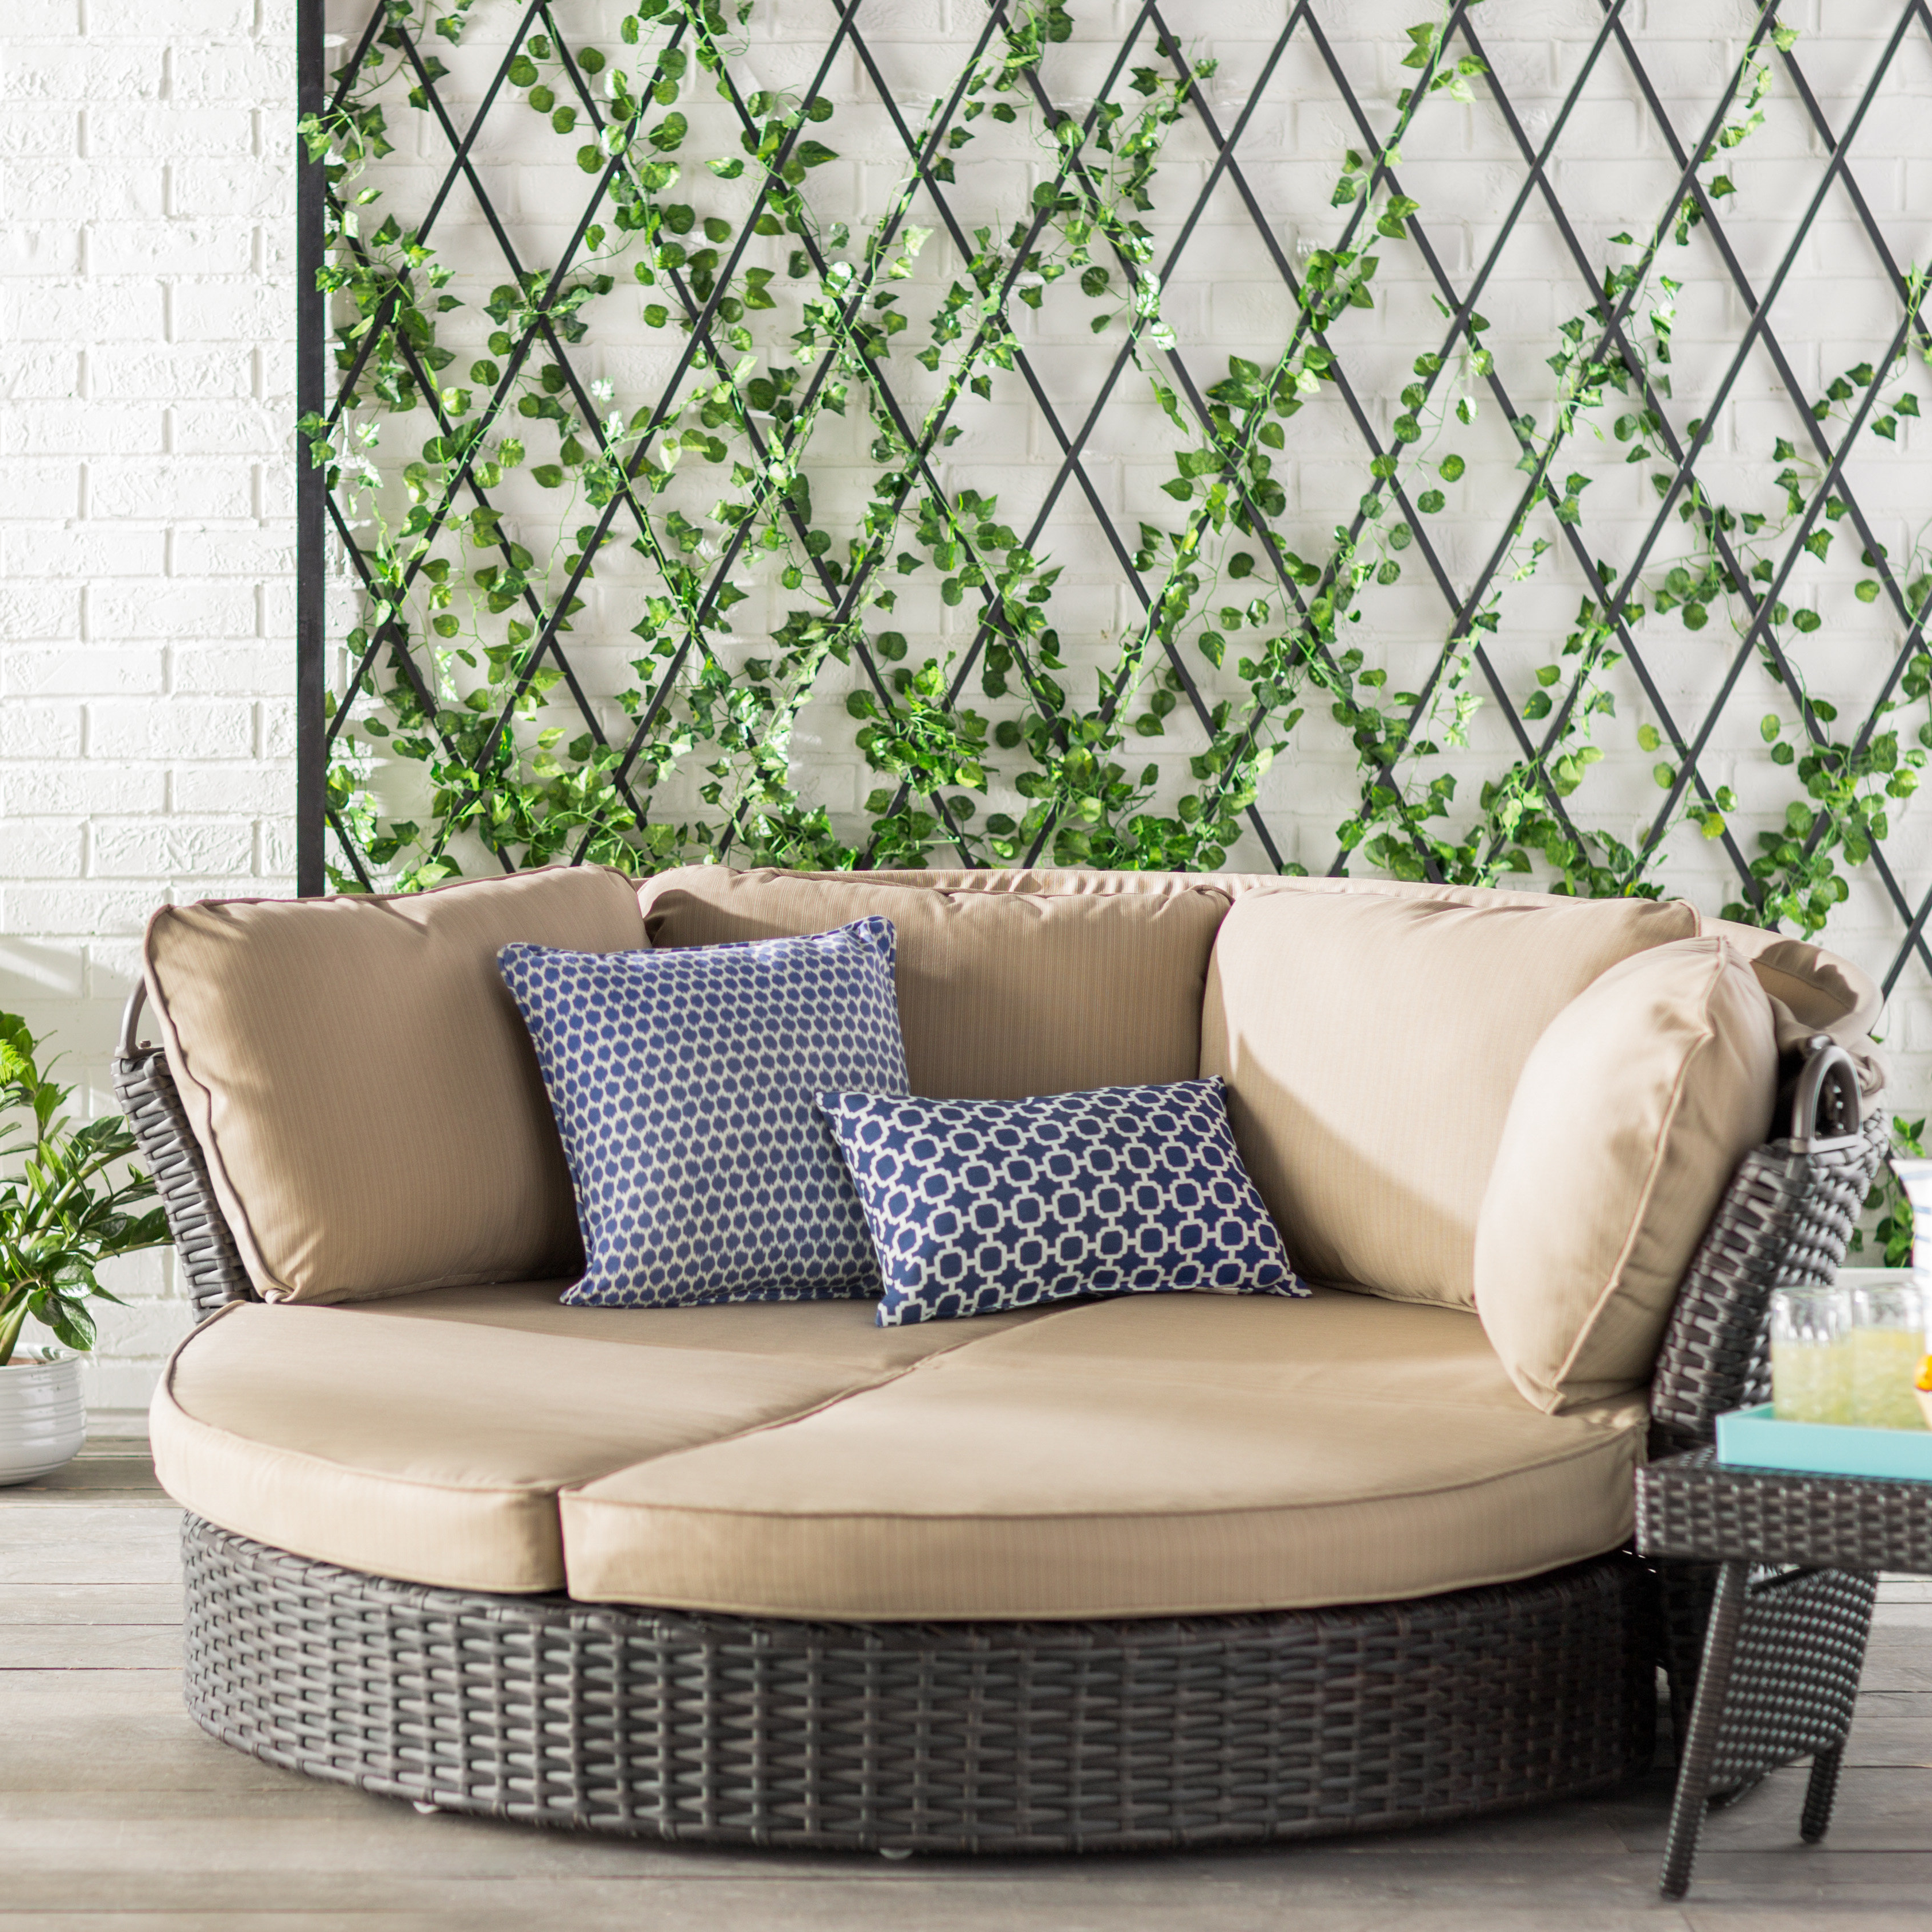 Most Popular Fansler Patio Daybeds With Cushions With Tiana Patio Daybed With Cushions (View 18 of 20)